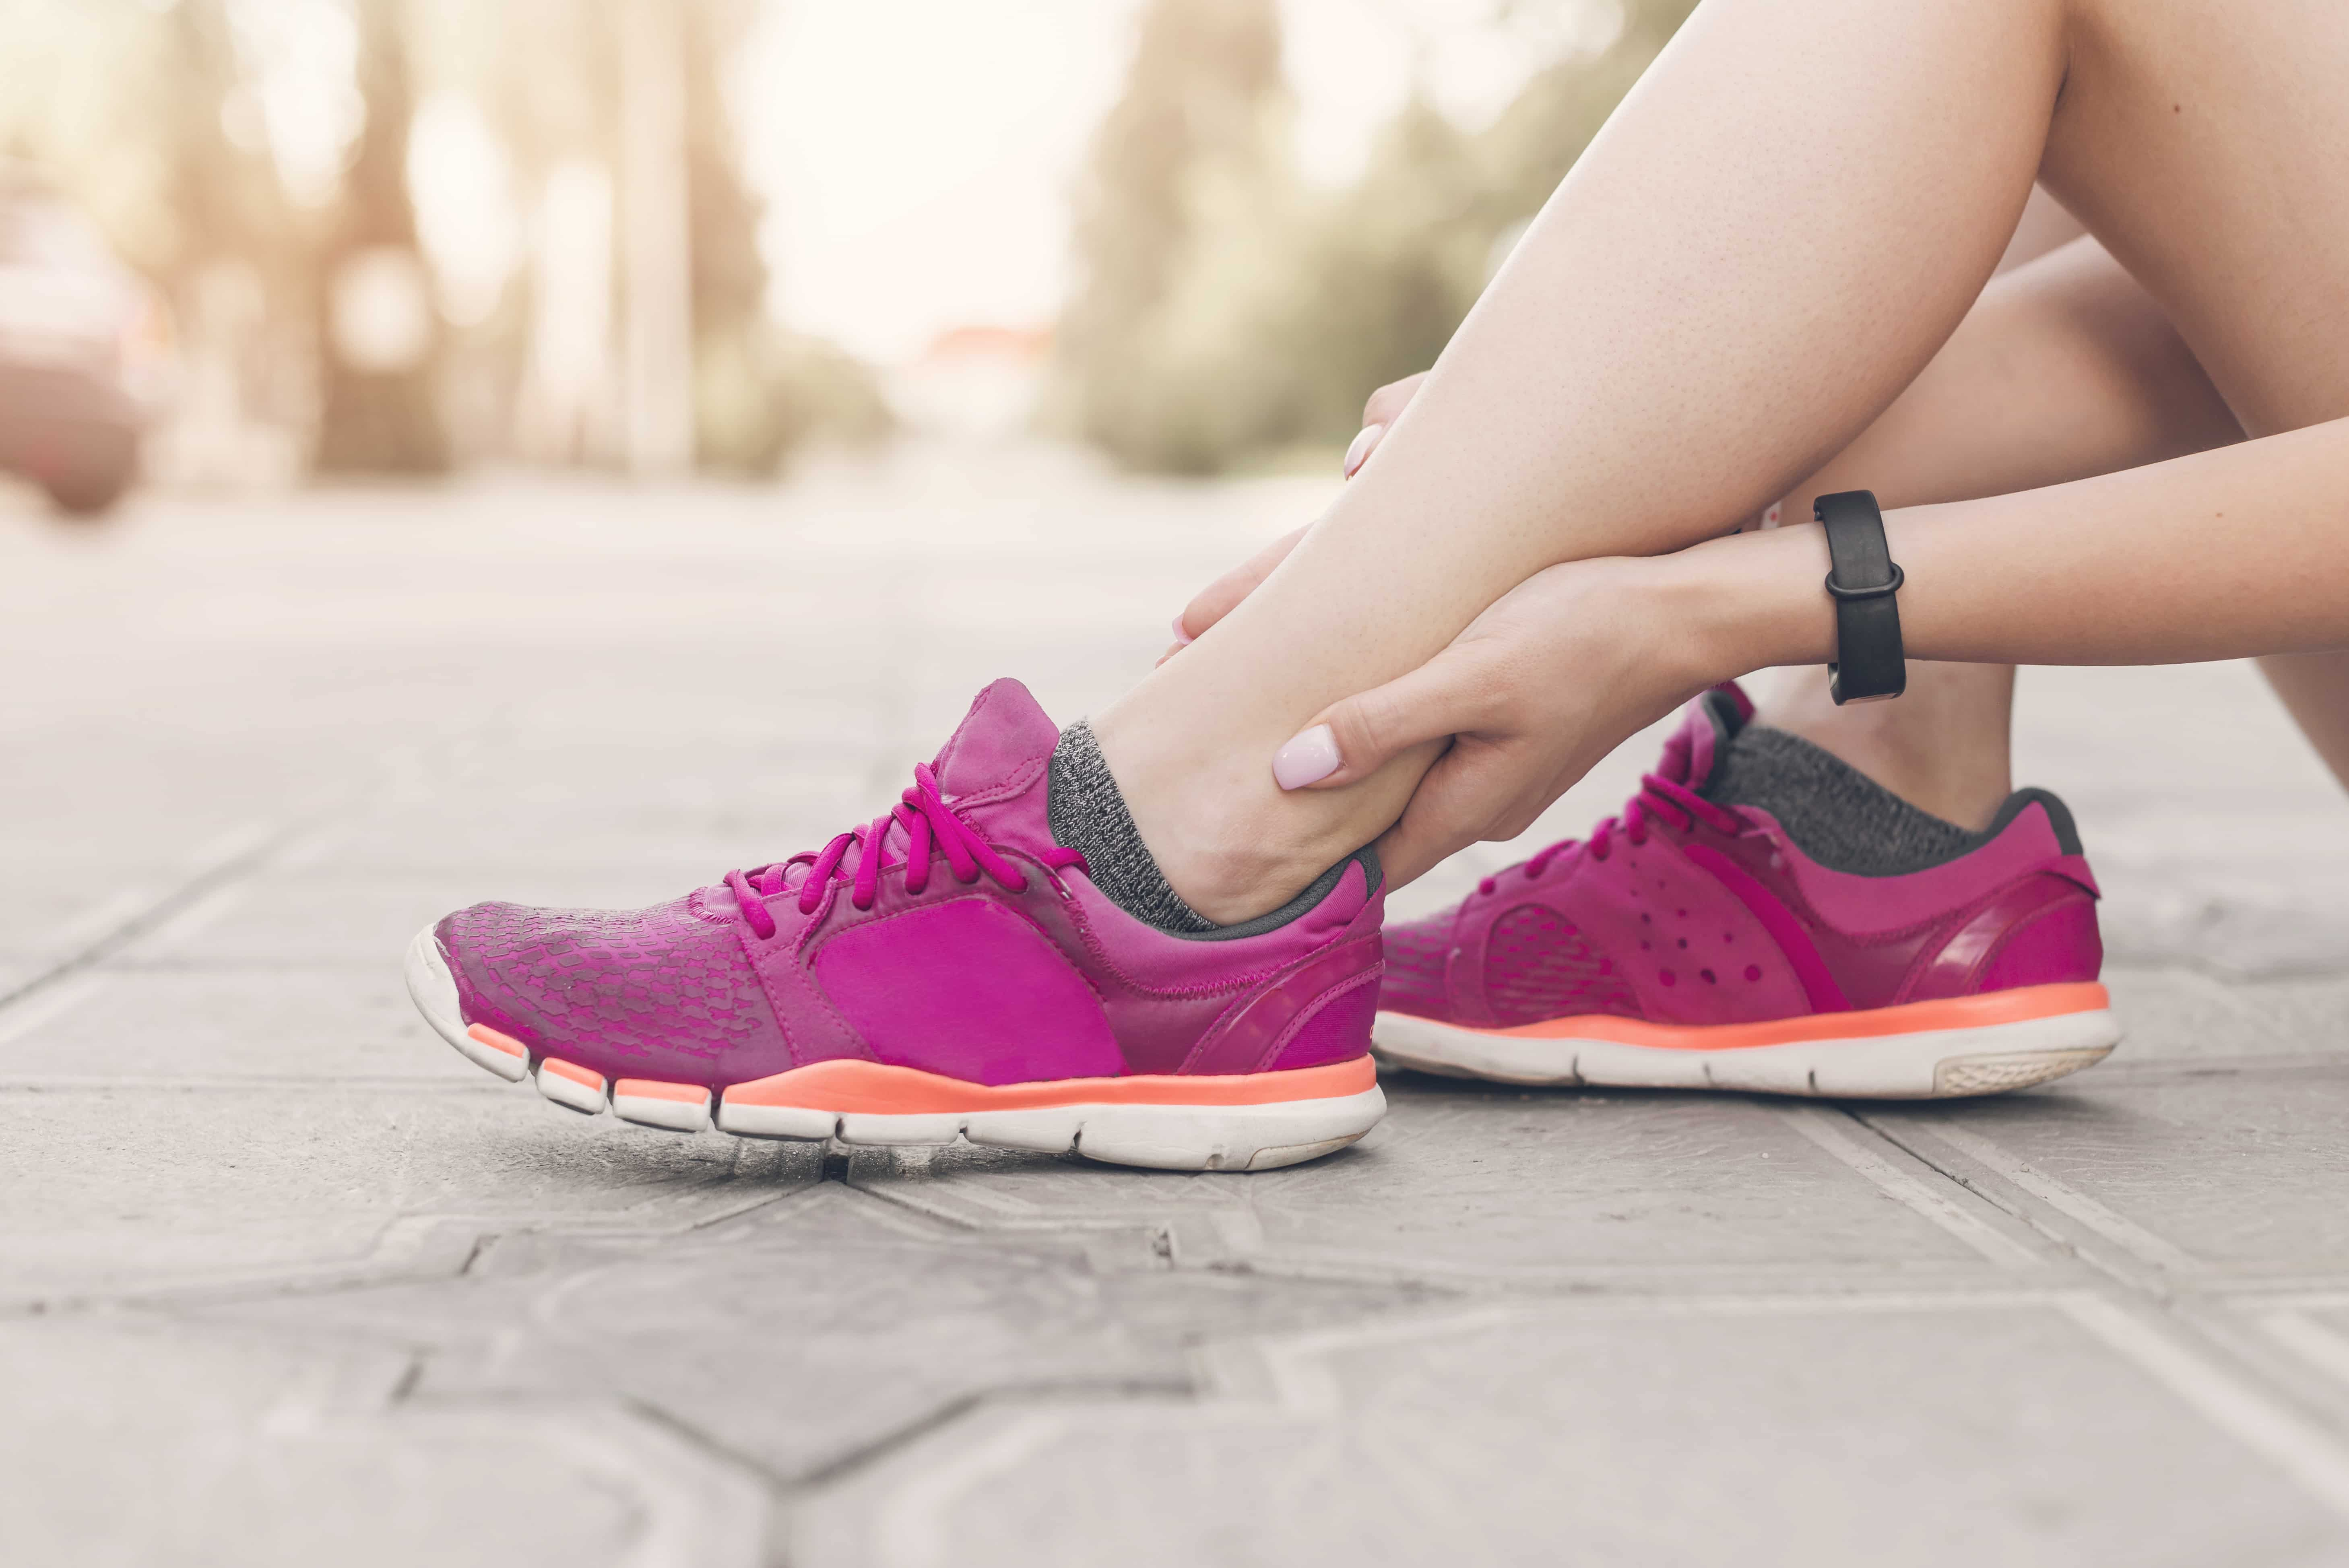 87a1085c4c6b 5 Signs You ve Bought The Wrong Running Shoes - Women s Health